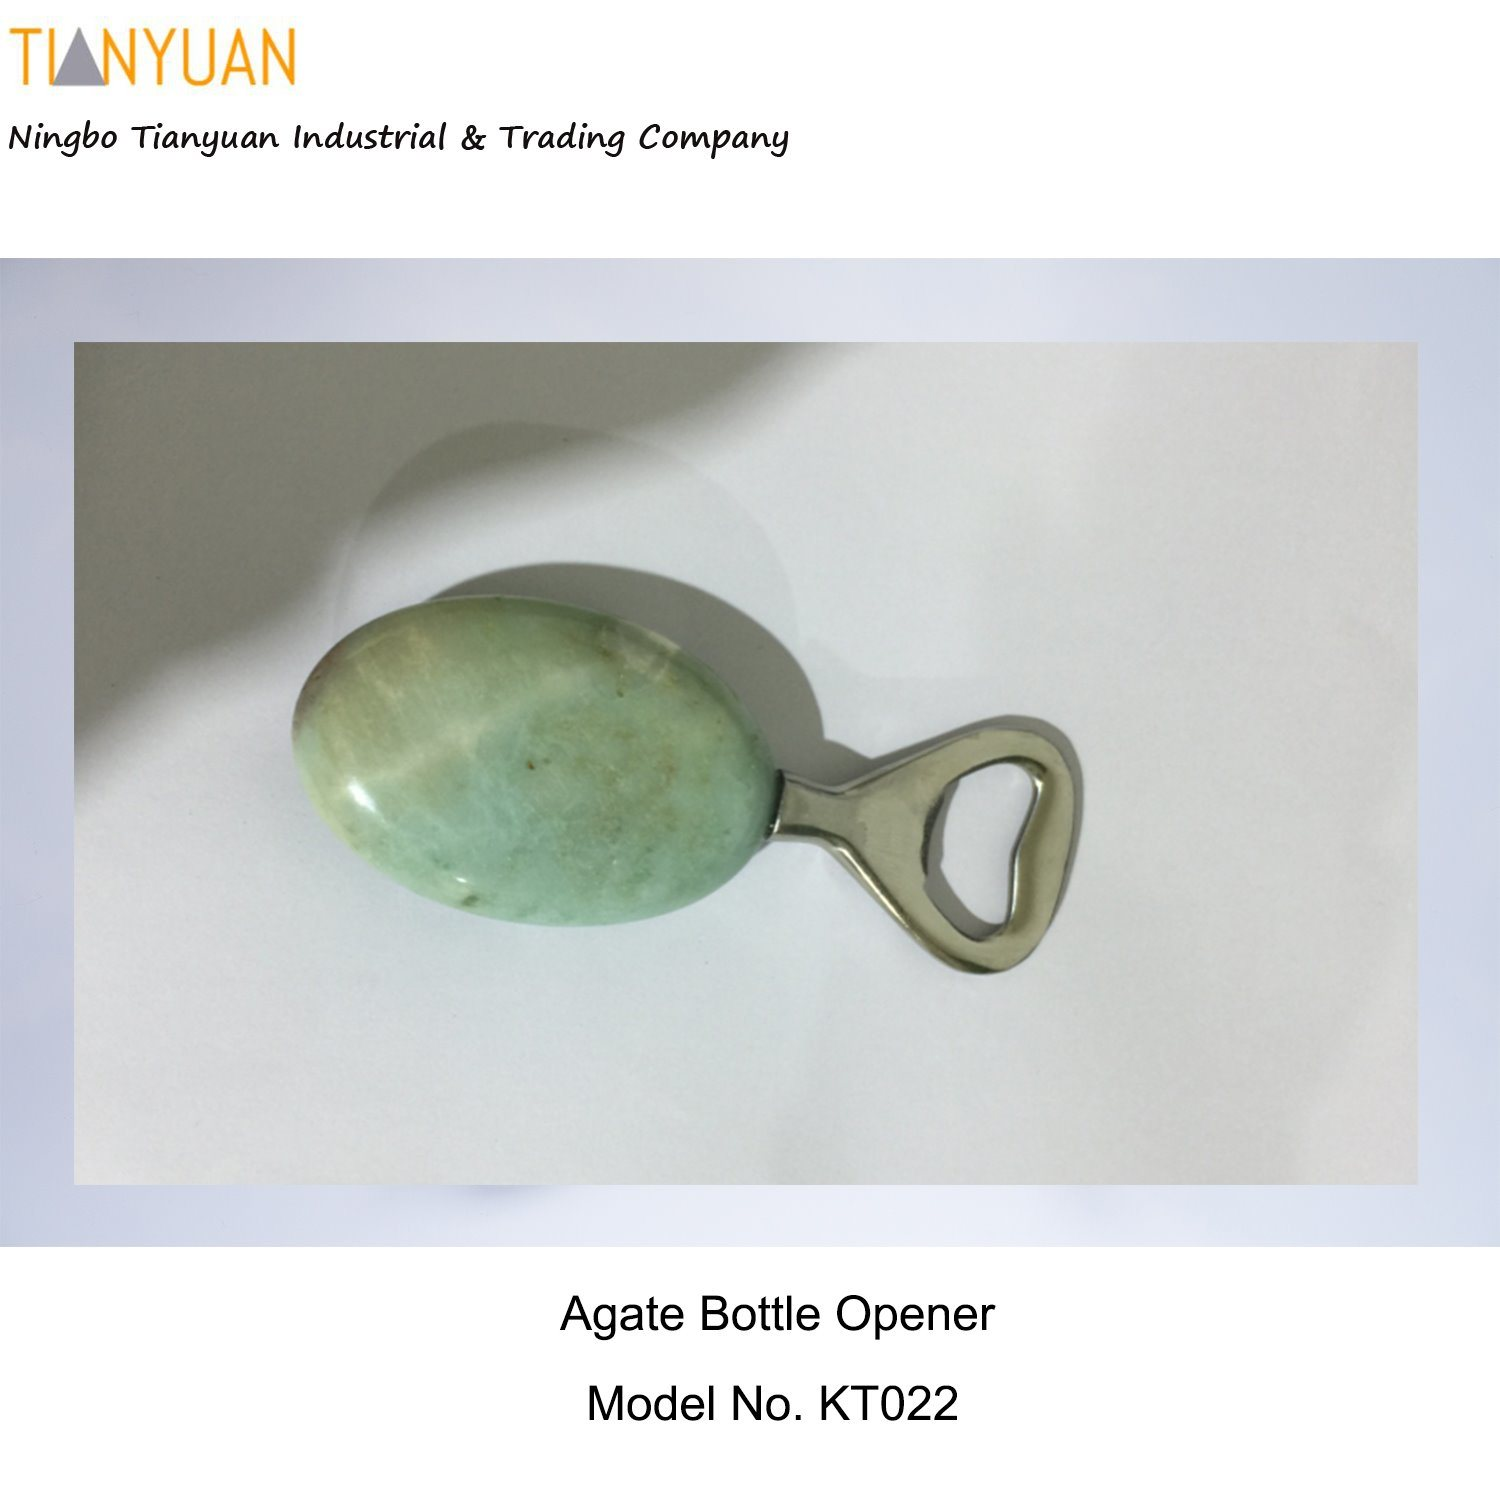 Agate Bottle Opener/ Anthropologie/Bottle Opener-Botswana Agate with Stainless Steel Metal Parts